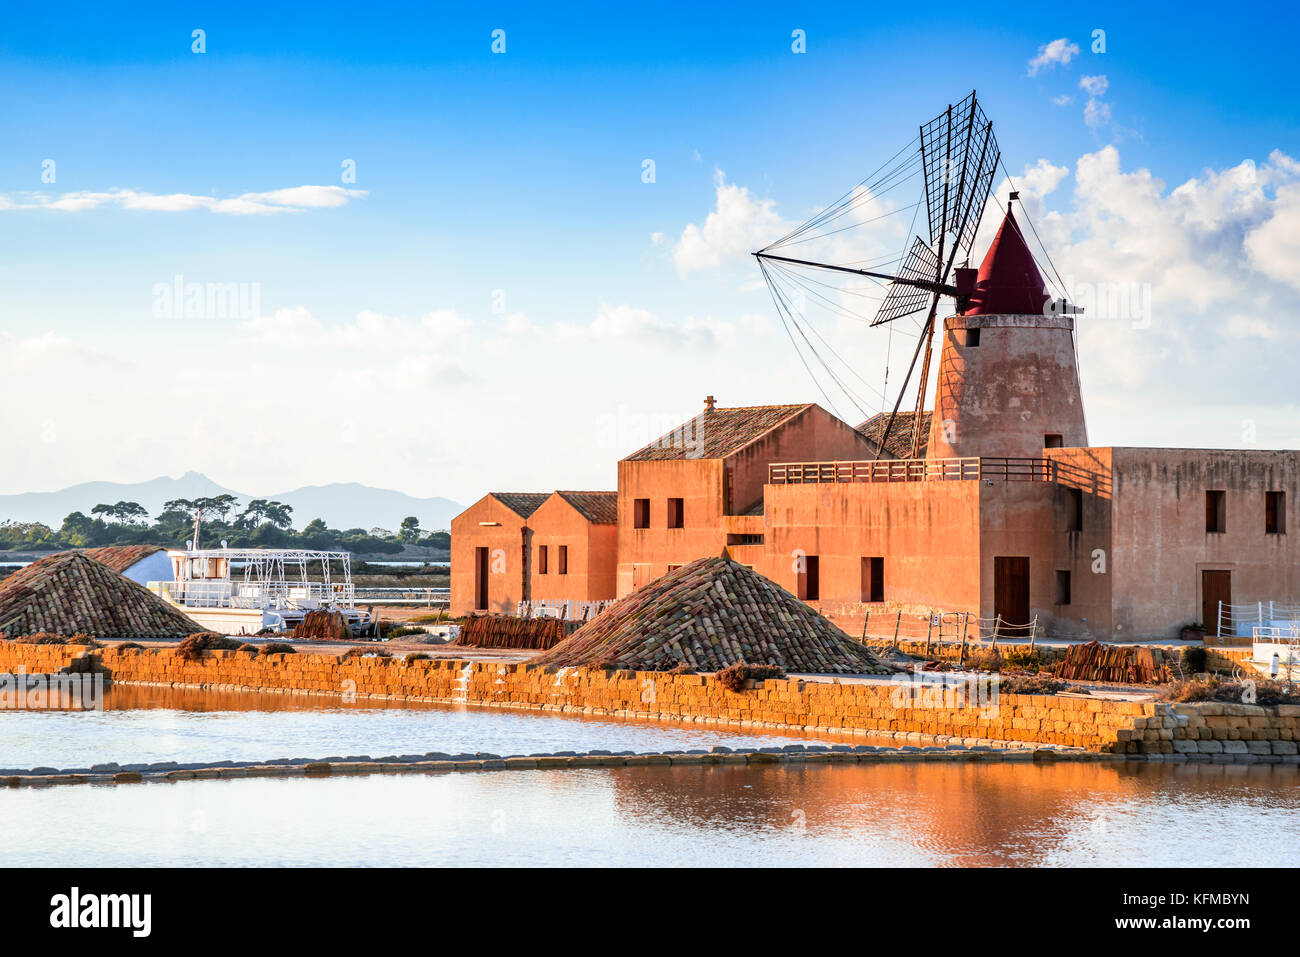 Marsala, Italy. Stagnone Lagoon with vintage windmills and saltwork, Trapani province, Sicily. - Stock Image